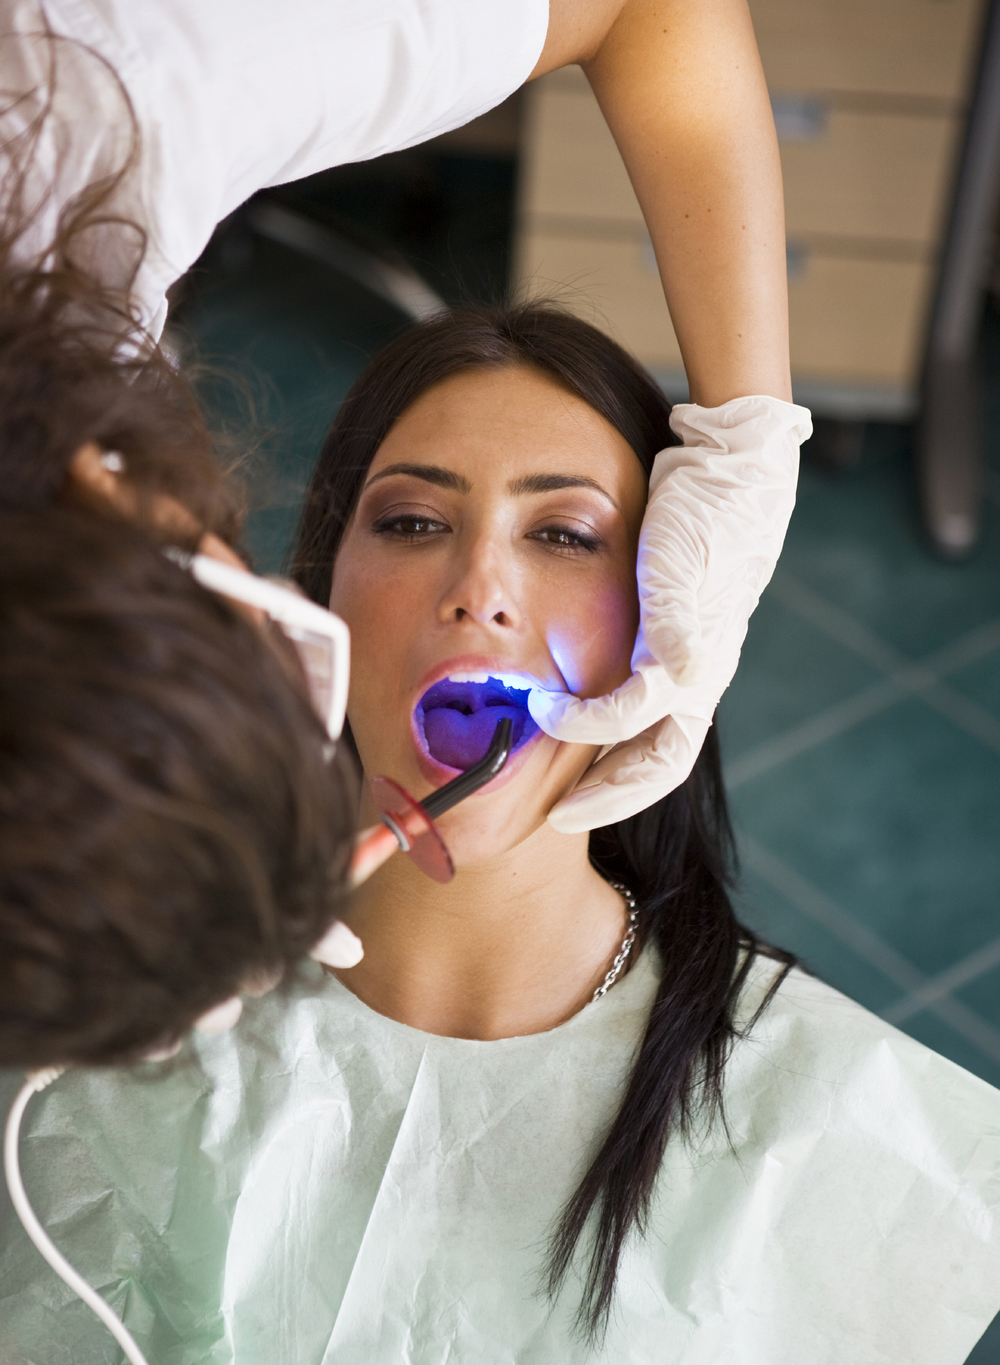 Dr. Wiggins uses an intra-oral camera to get a clear picture of the health of your mouth.